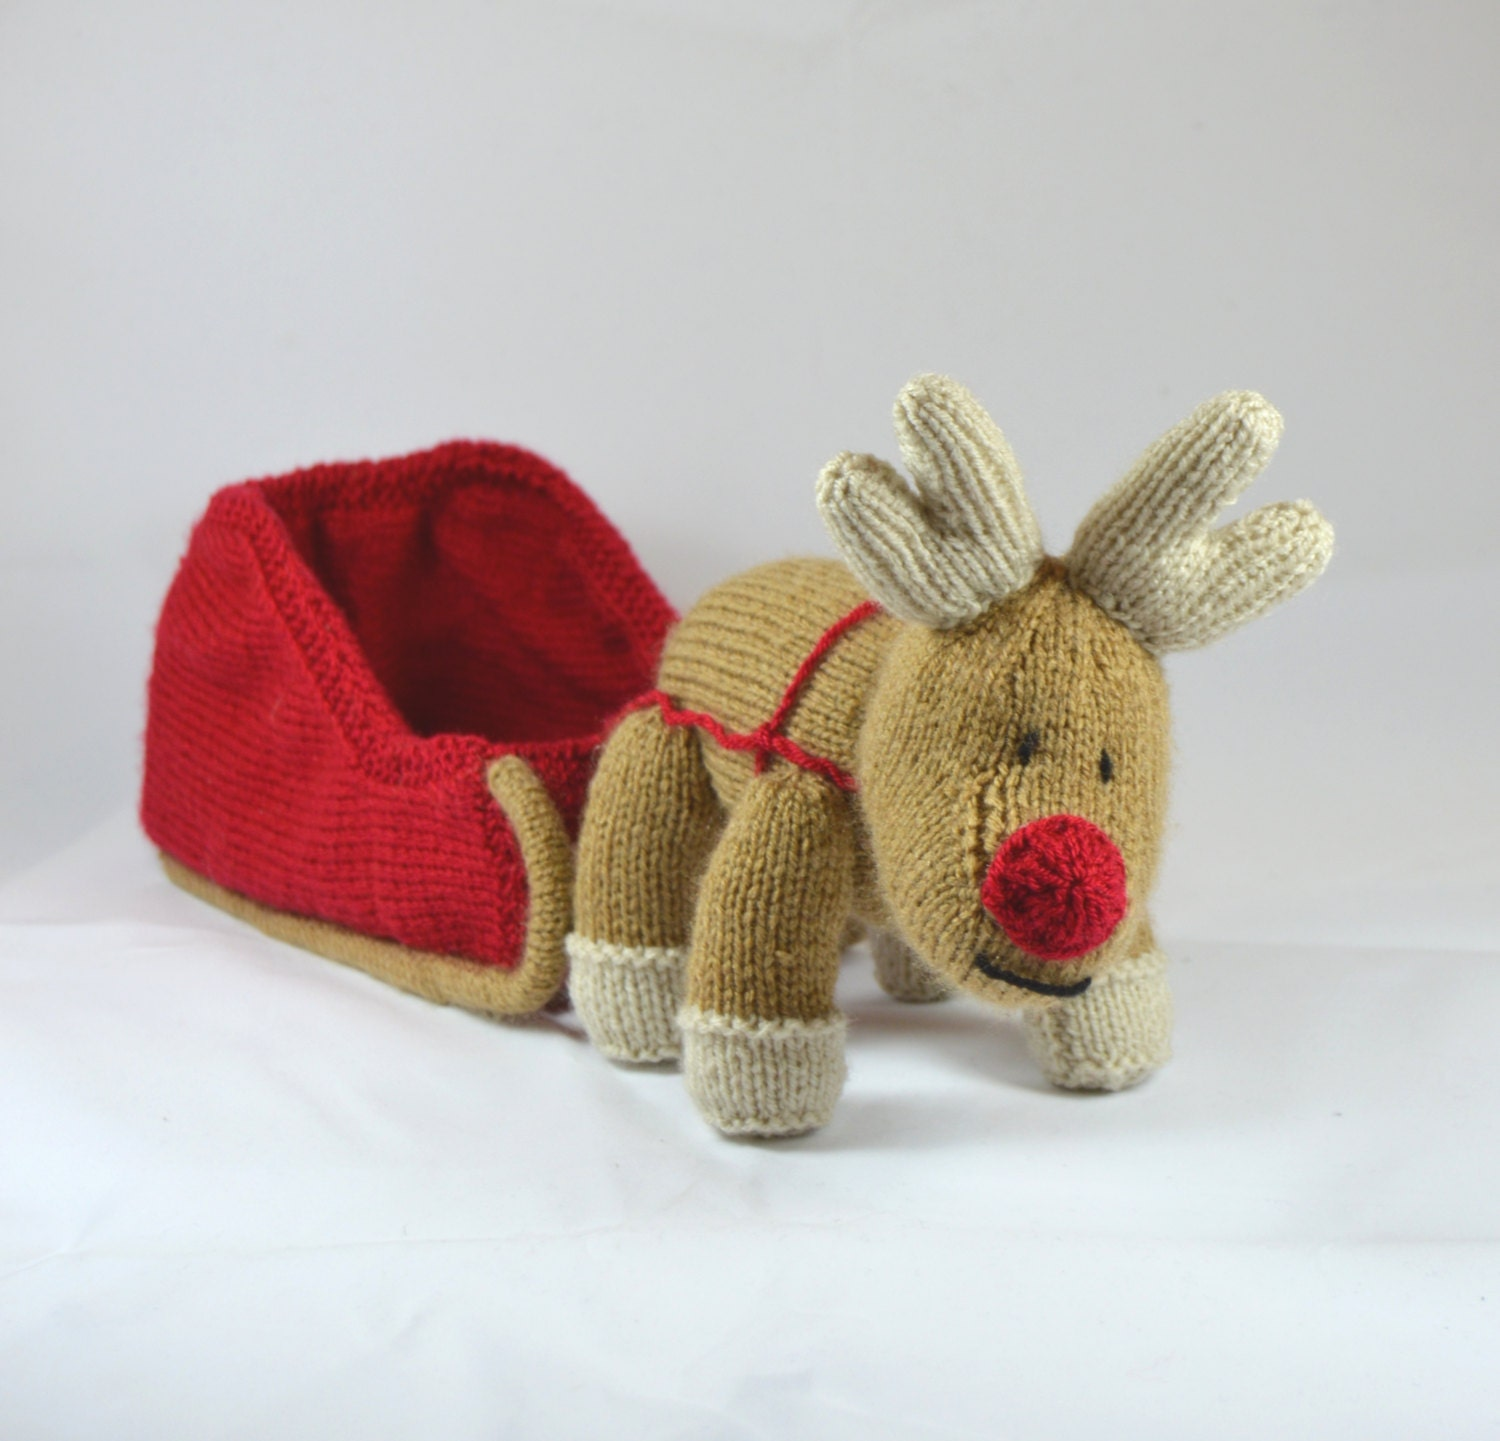 Knitting Pattern For Reindeer Antlers : KNITTING PATTERN Reindeer and Sleigh Christmas Knitting